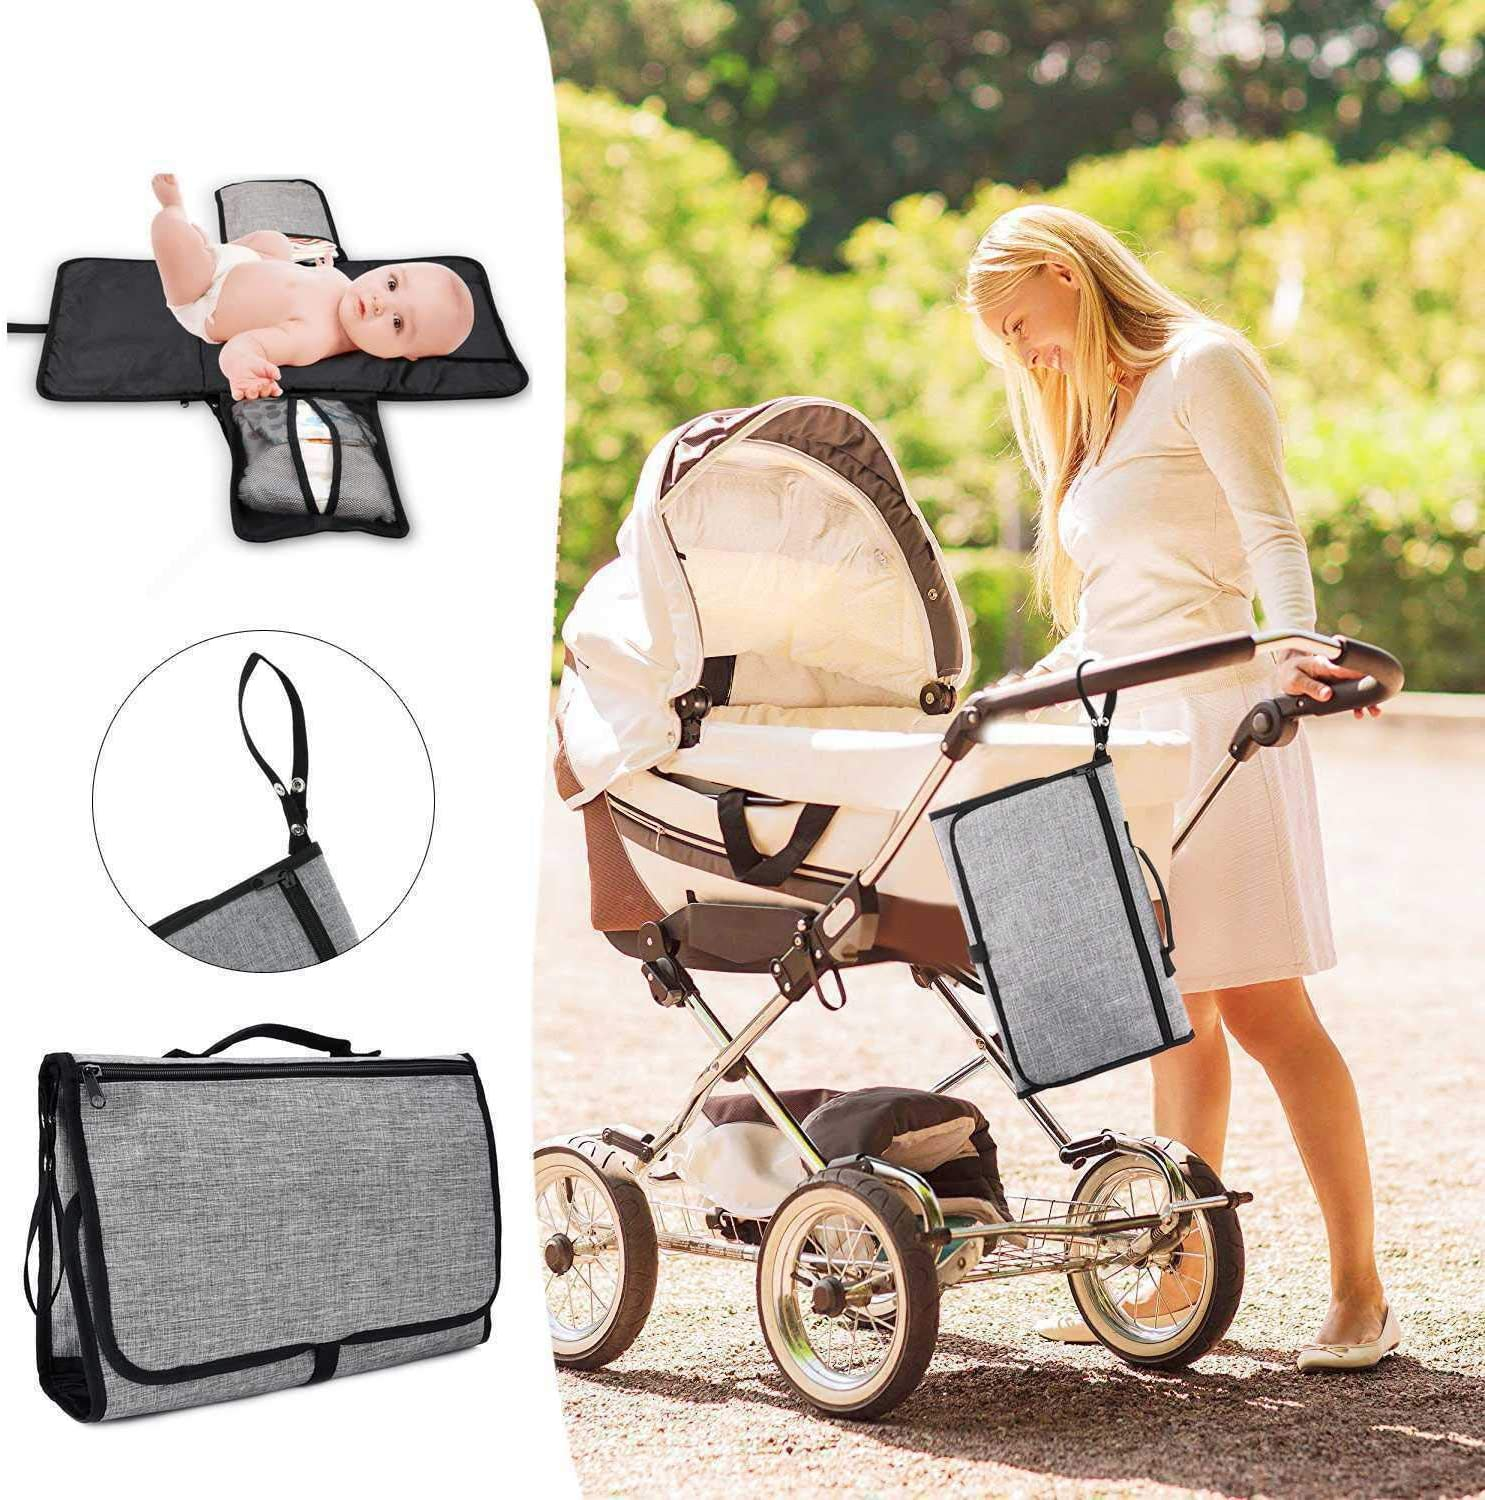 PQZATX Portable Baby Diaper Changing Pad Detachable Waterproof Baby Travel Changing Mat Station with Head Cushion Bag Storage